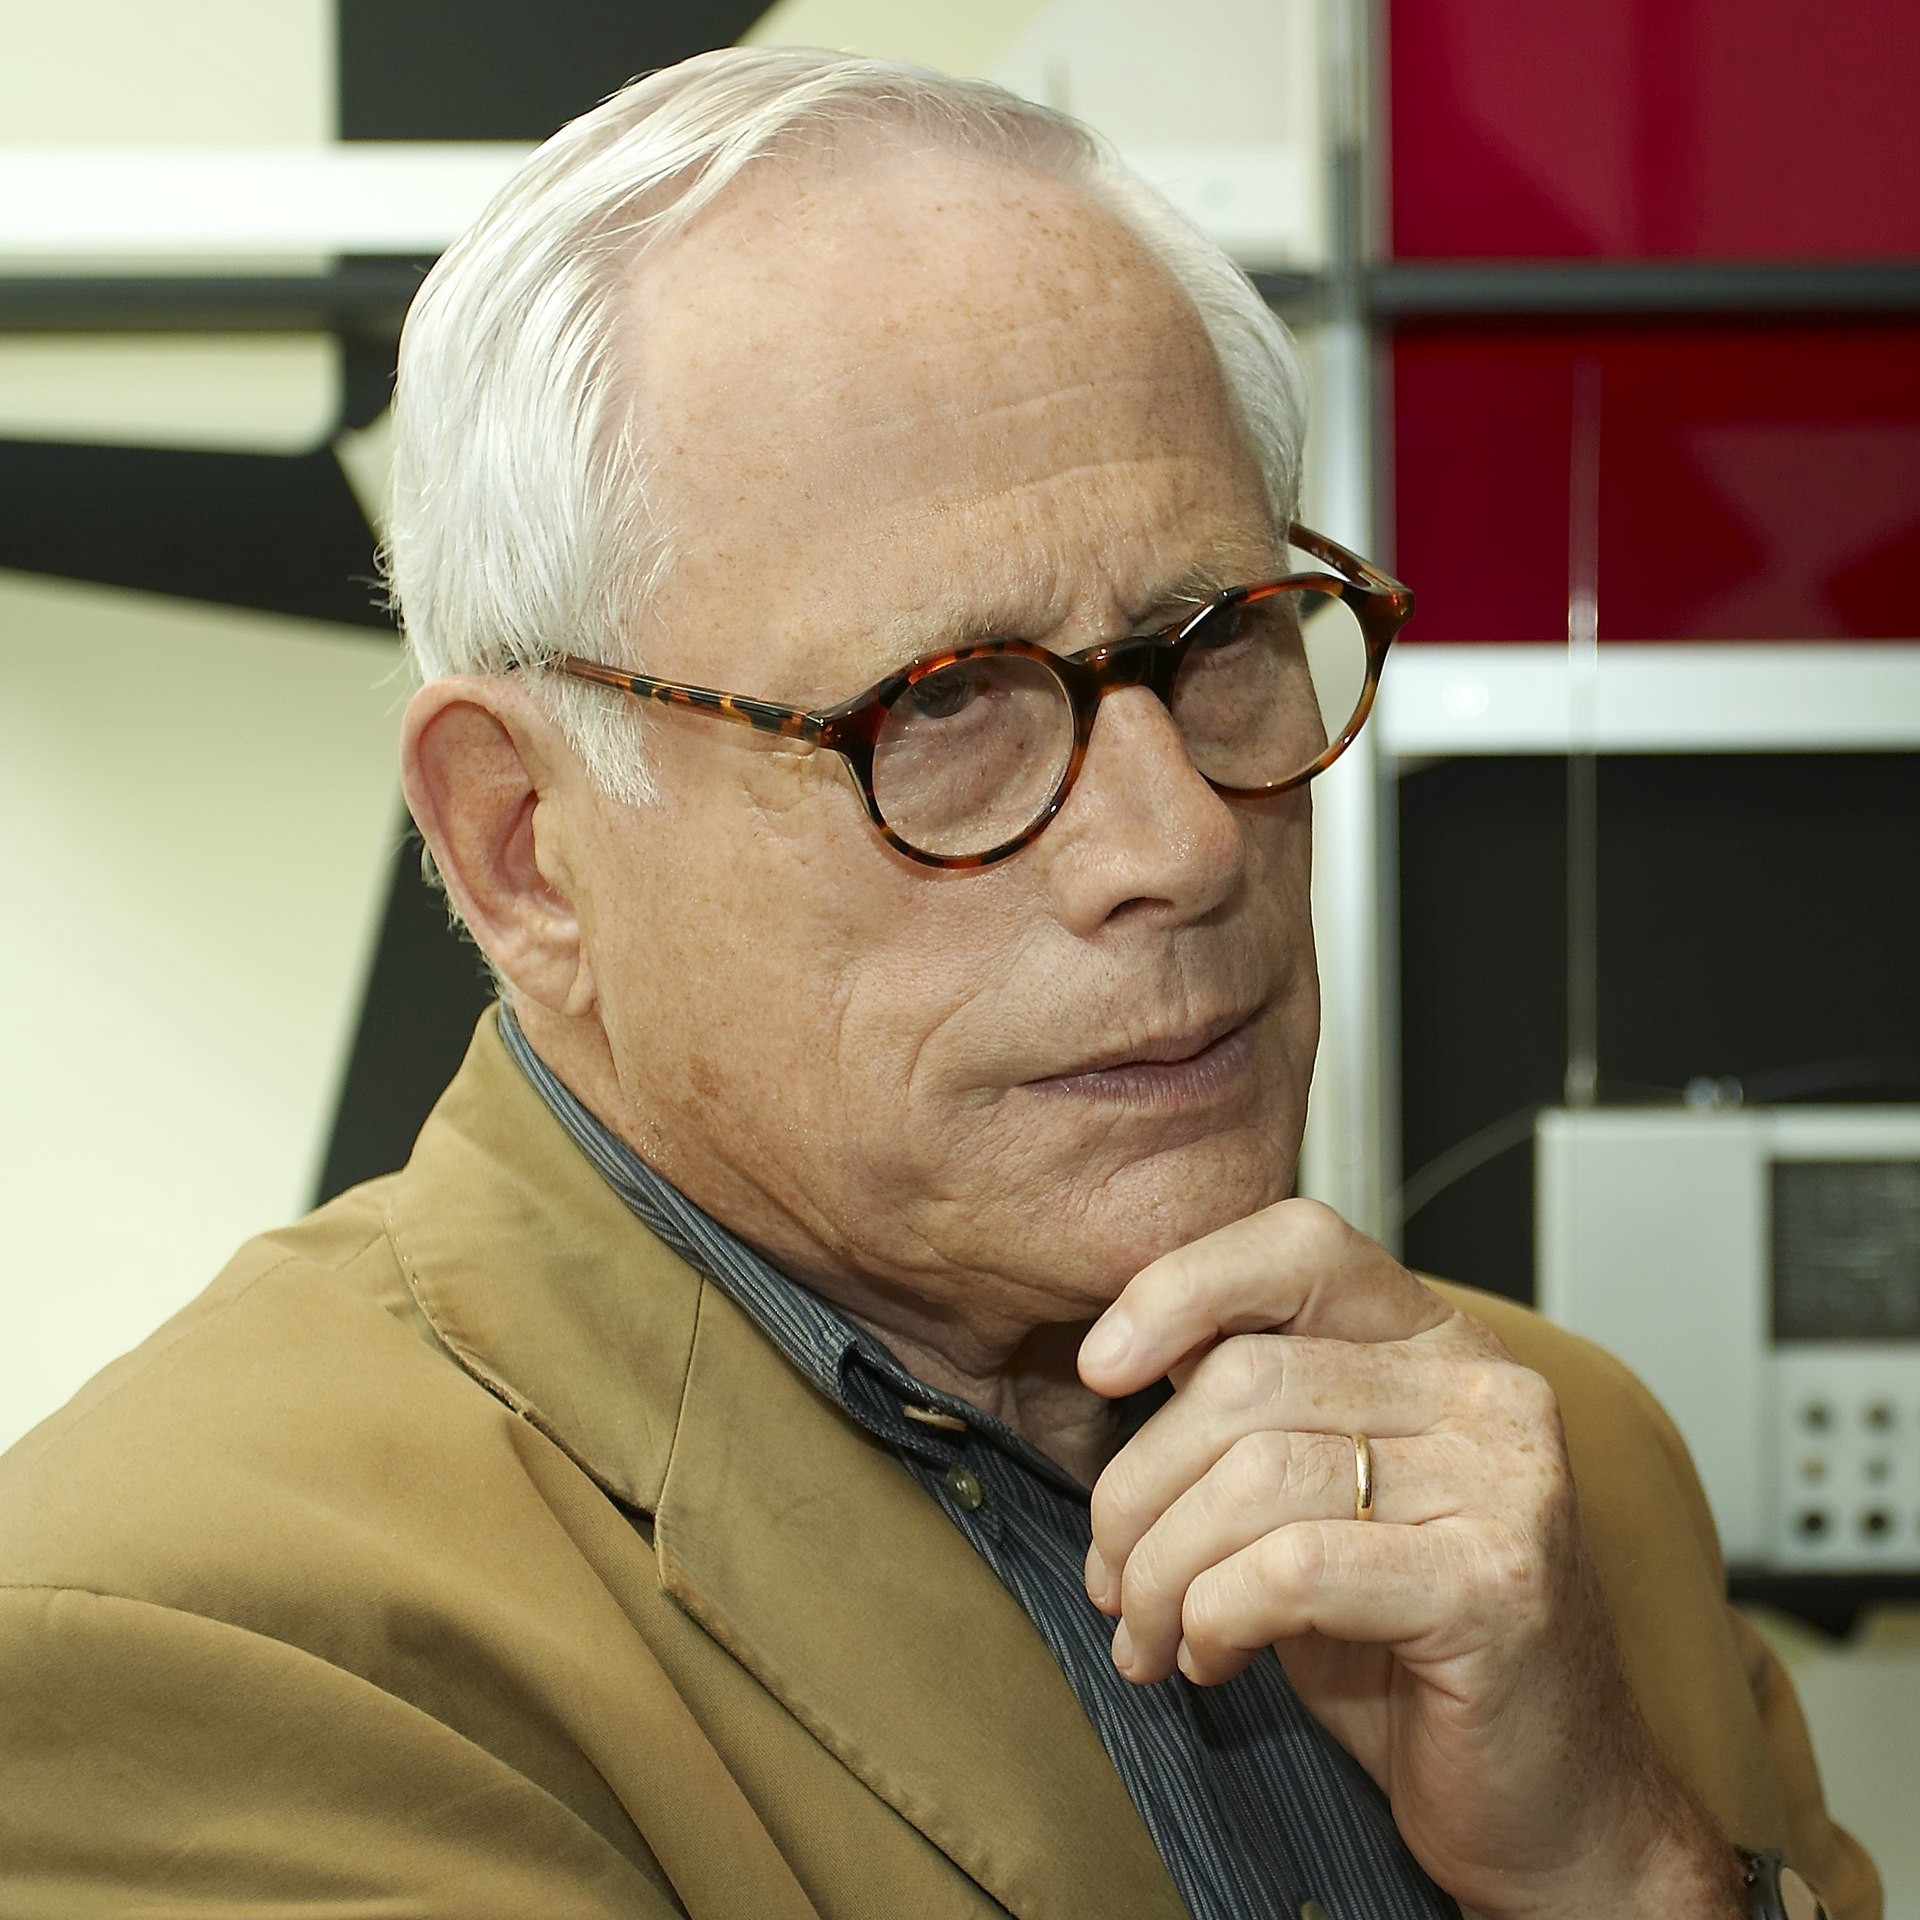 """A portrait of Dieter Rams, the industrial designer at Braun, whose """"10 Principles of Good Design"""" can inform our practice"""